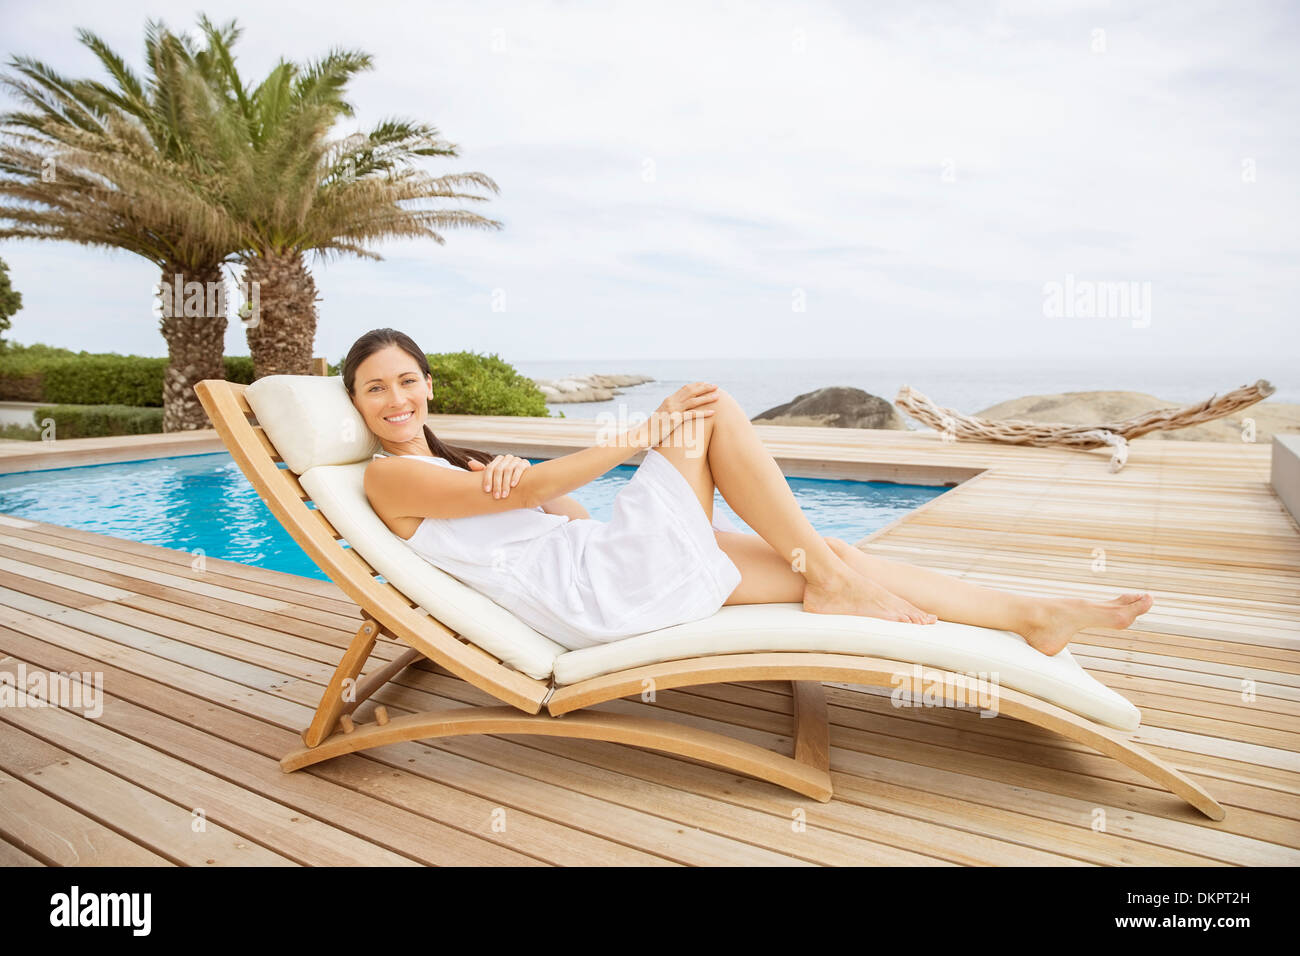 Woman relaxing in lounge chair at poolside Stock Photo